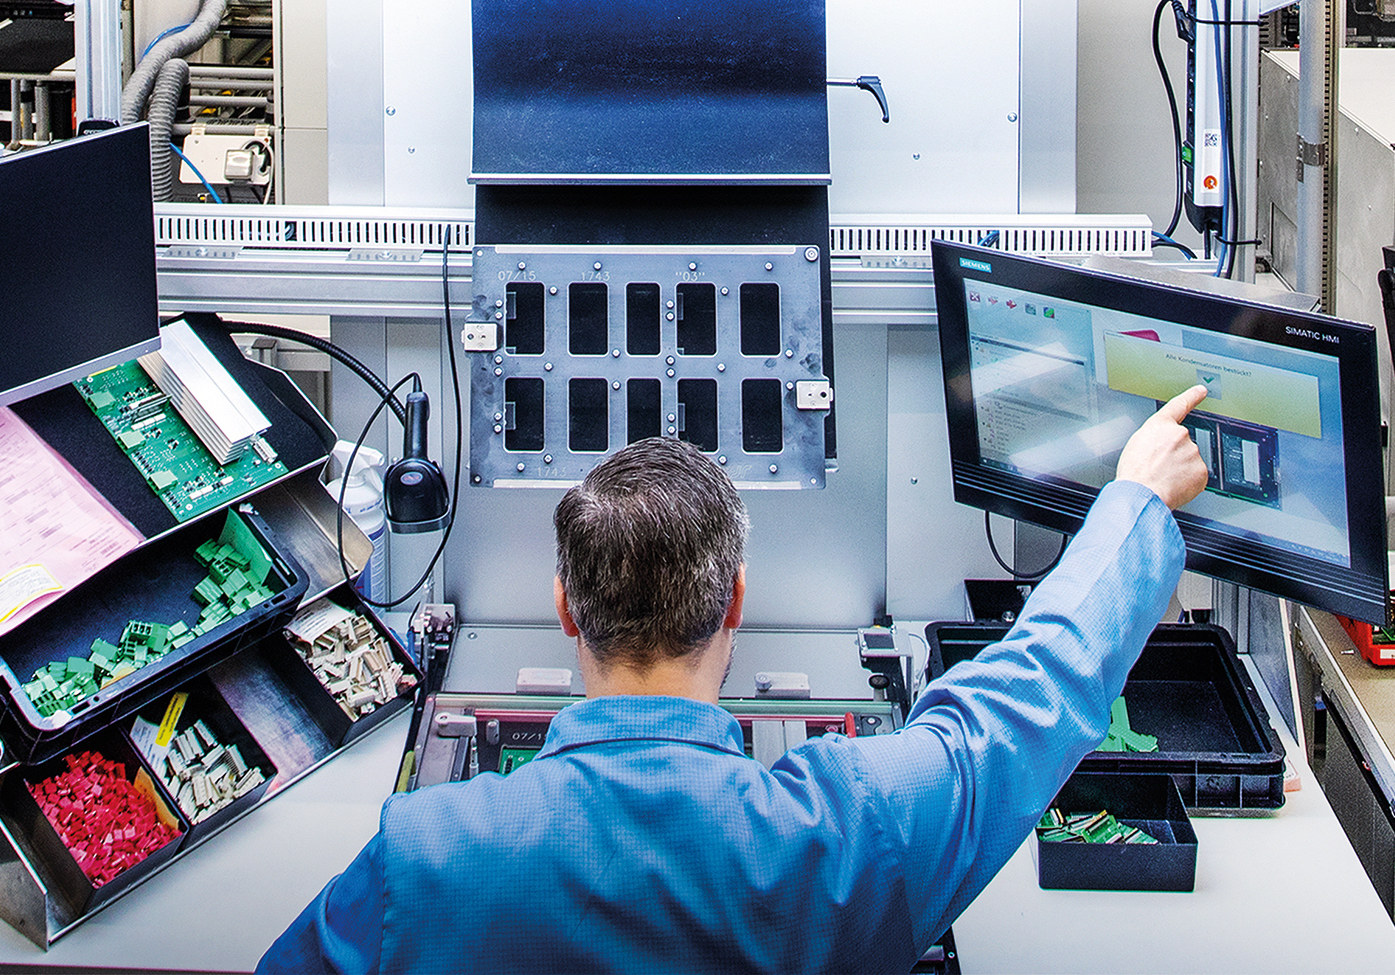 In our previous article, we discussed how Smart Klaus technology can be used for Assembly Assistance. In this entry, we'll examine how it can be used to improve the Final Inspection process.